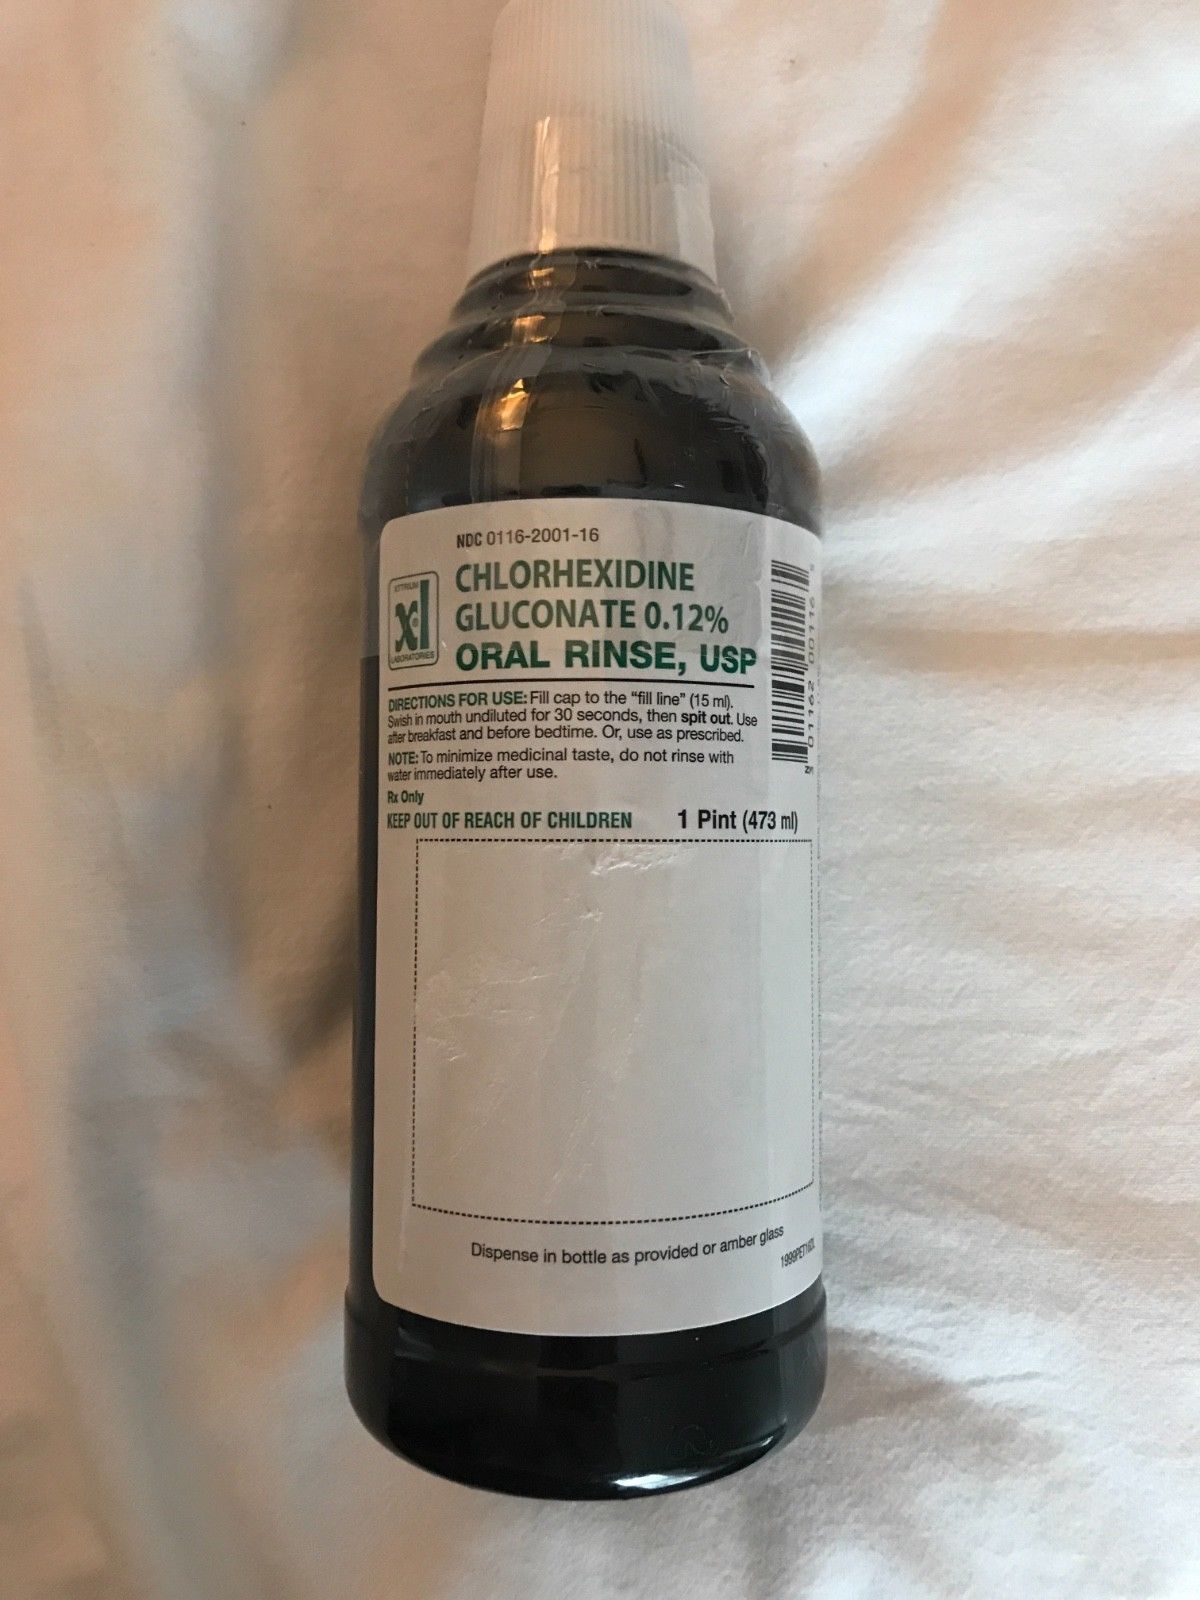 Mouthwash 180266 4 Bottles Chlorhexidine Gluconate BUY IT NOW ONLY 45